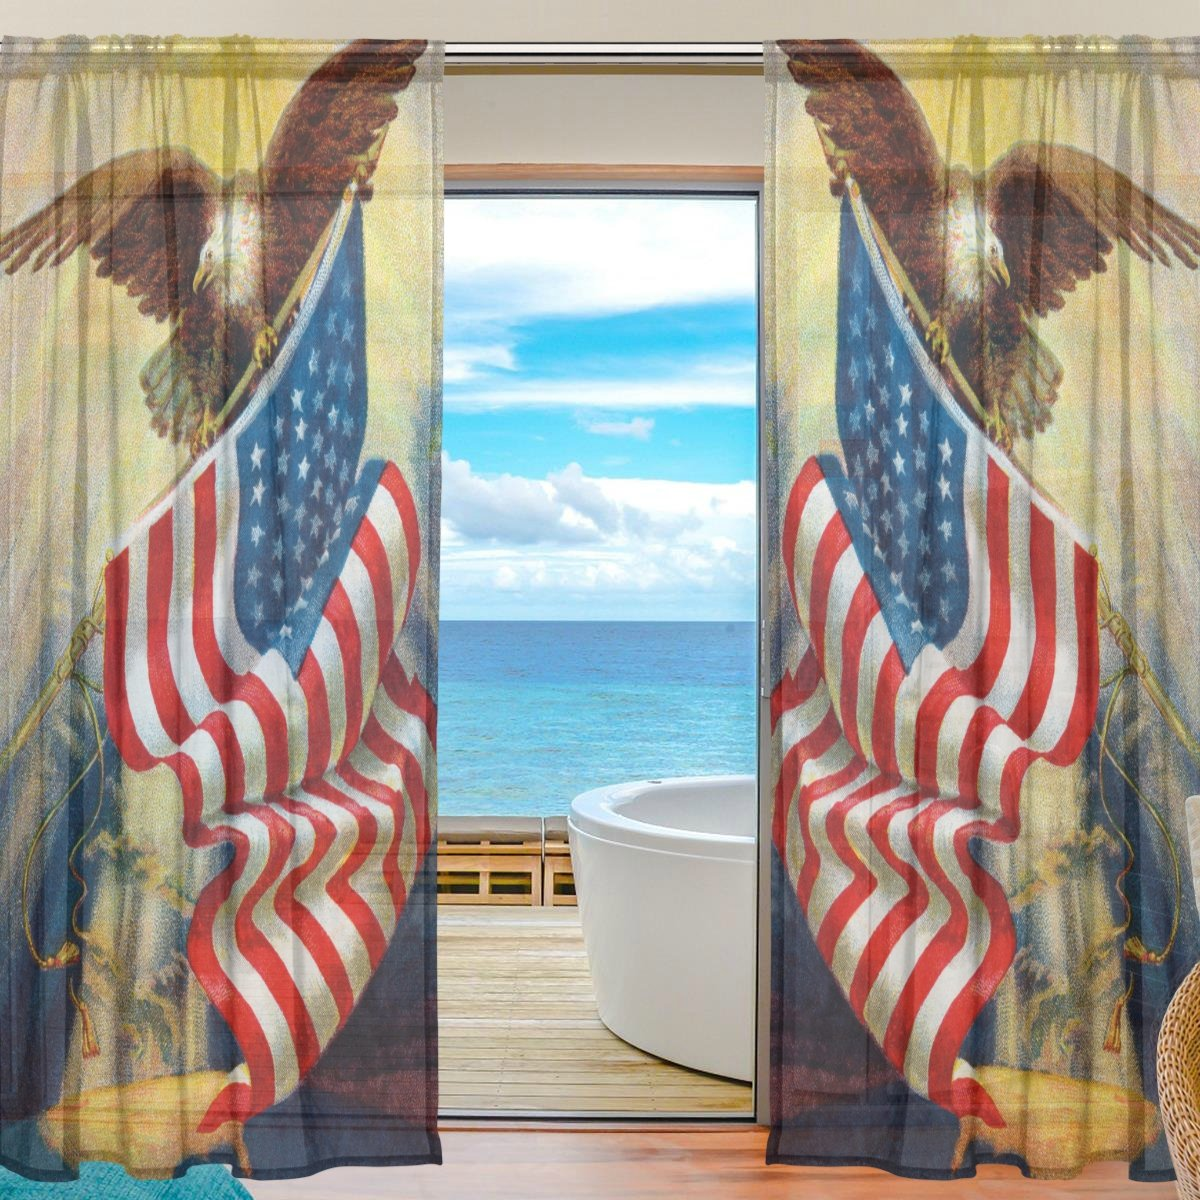 Vantaso Sheer Curtains 78 inch Long Bald Eagle and American Flag Vintage for Kids Girls Bedroom Living Room Window Decorative 2 Panels by Vantaso